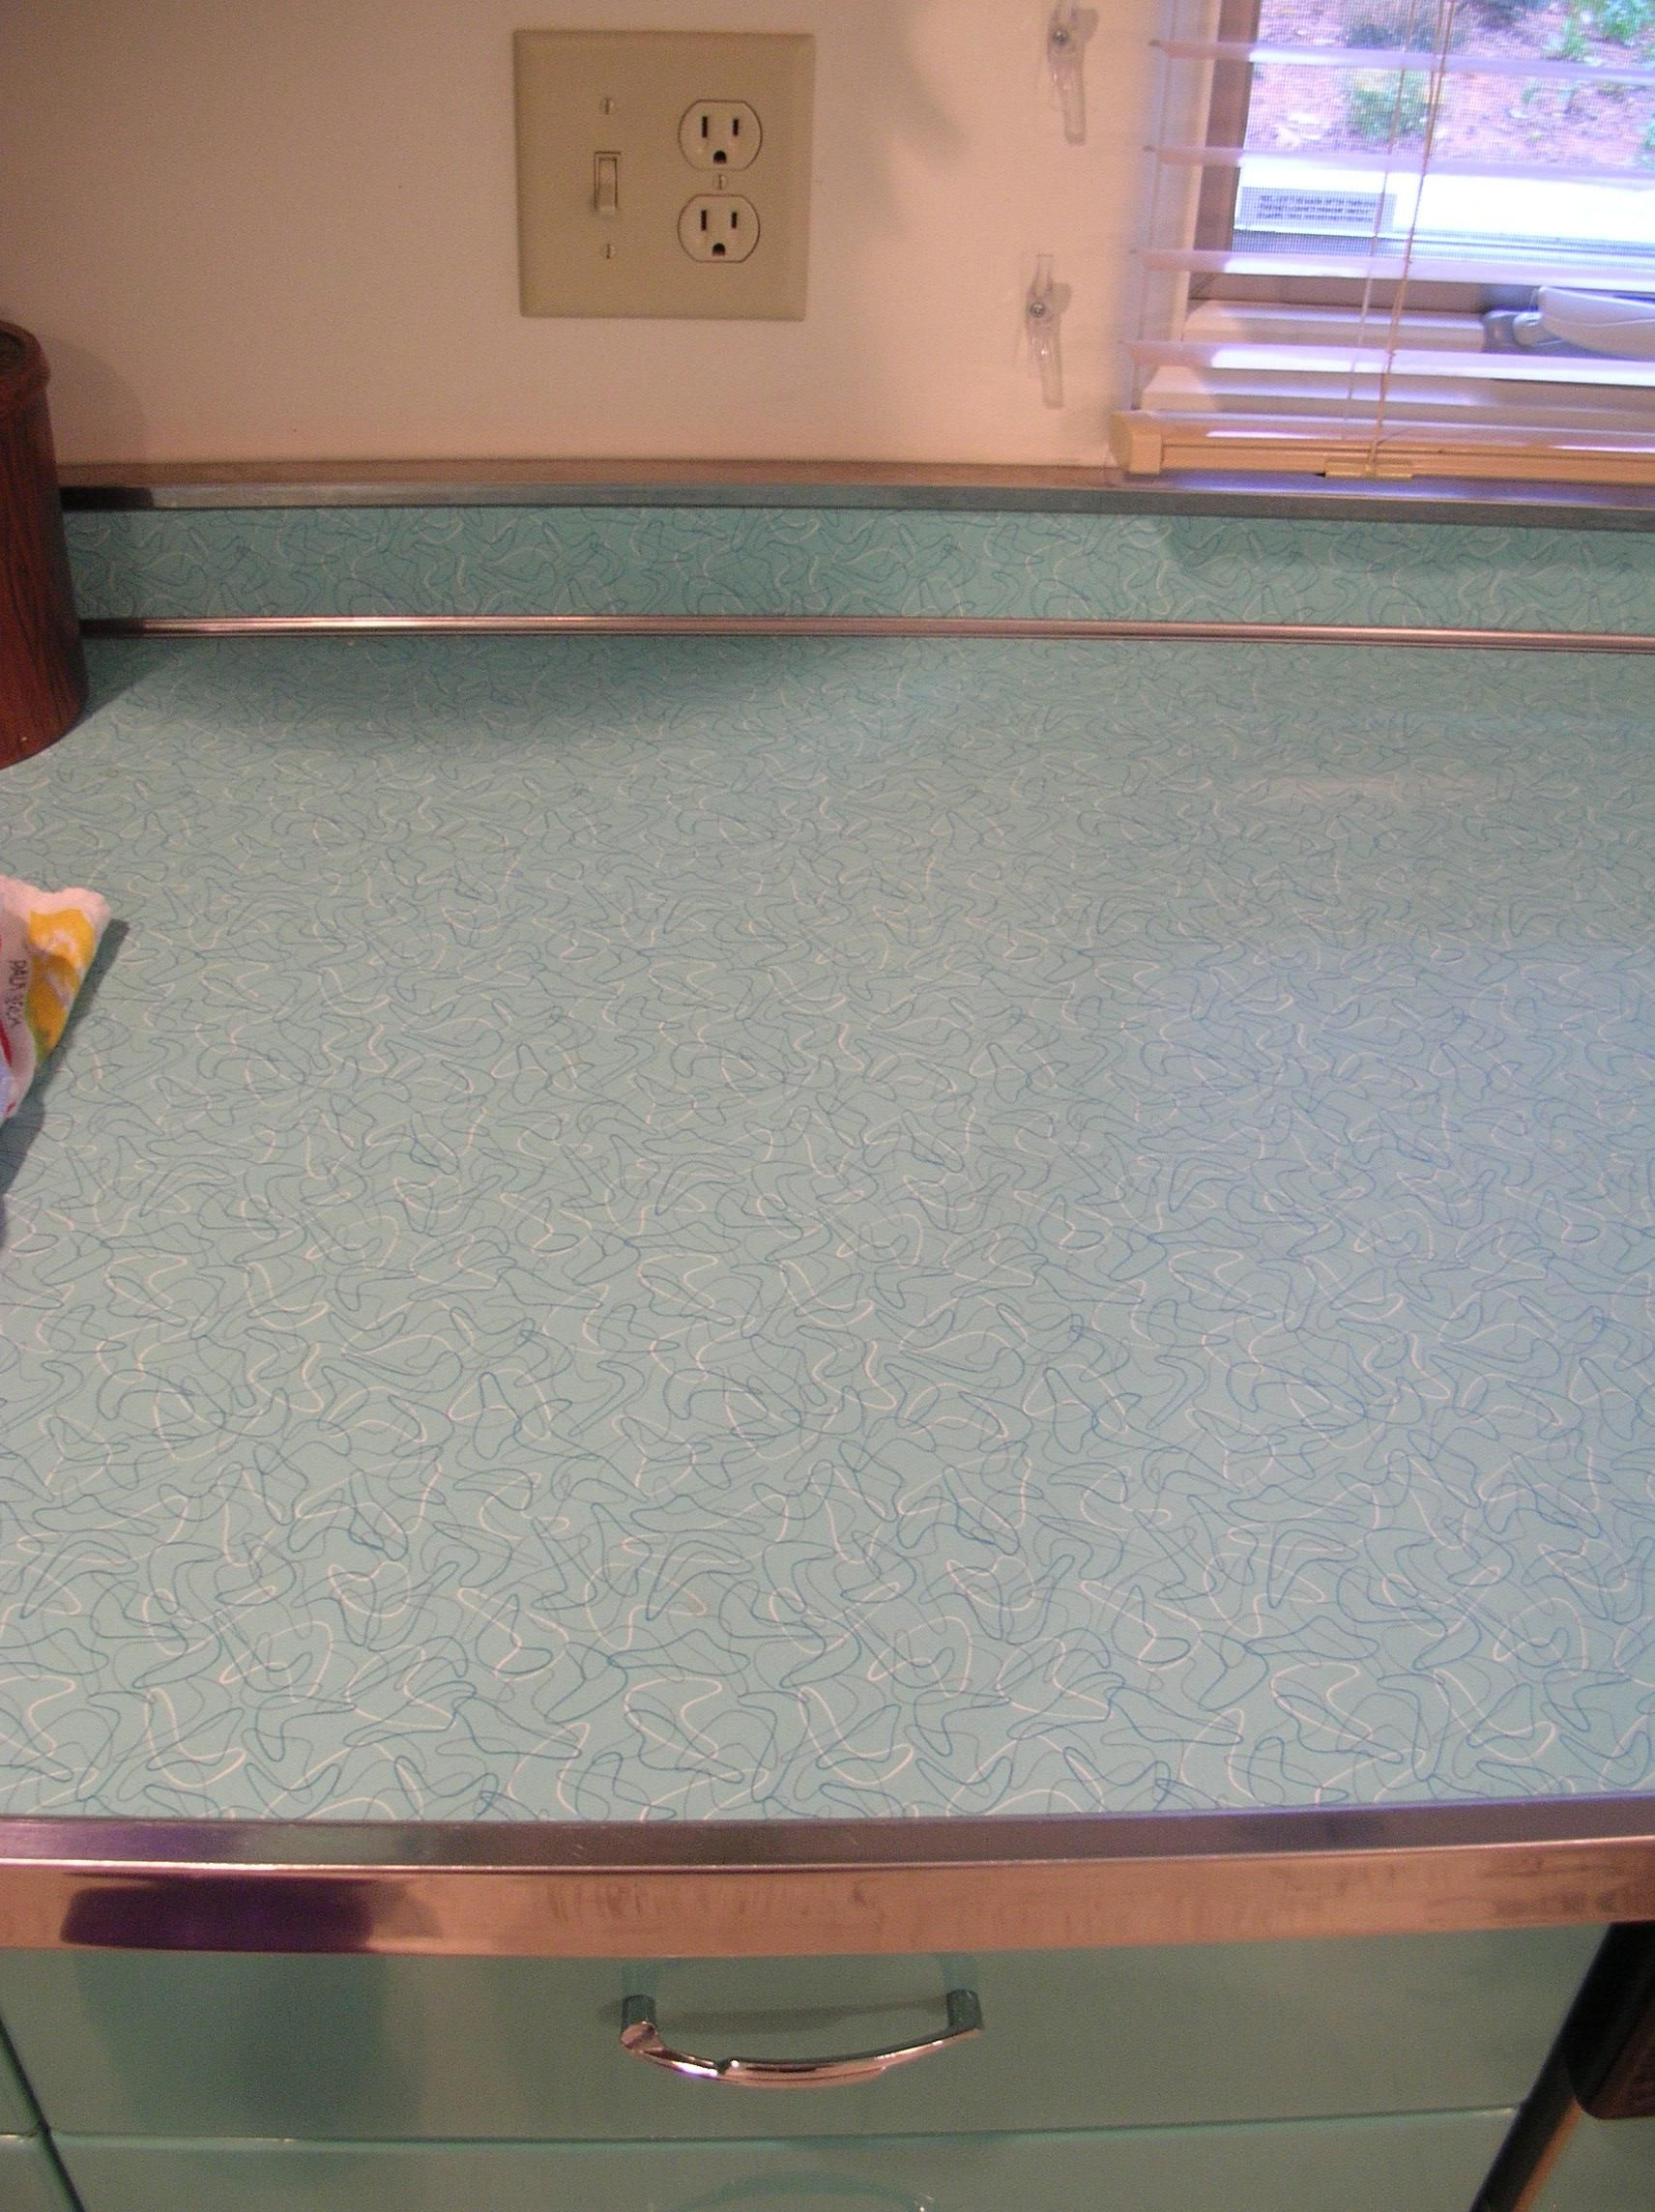 Vintage Laminate Countertops Stainless Steel Metal Edging For Your Laminate Countertop